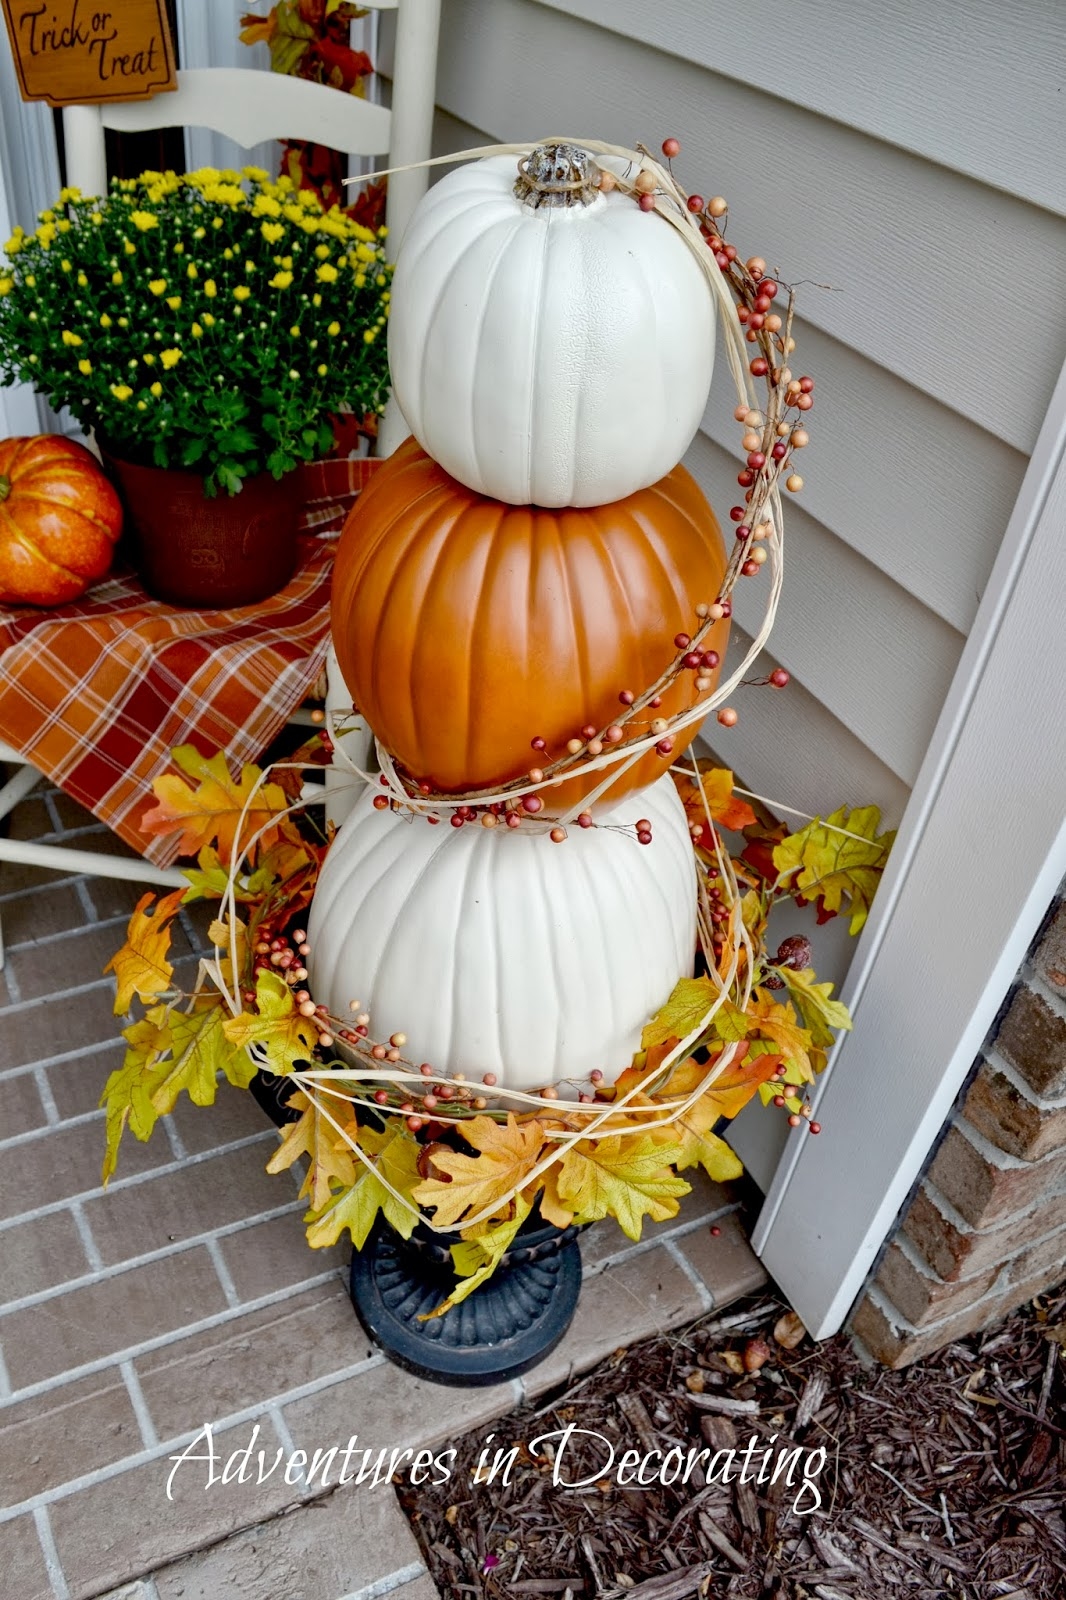 Adventures in decorating our fall front porch Fall outdoor decorating with pumpkins